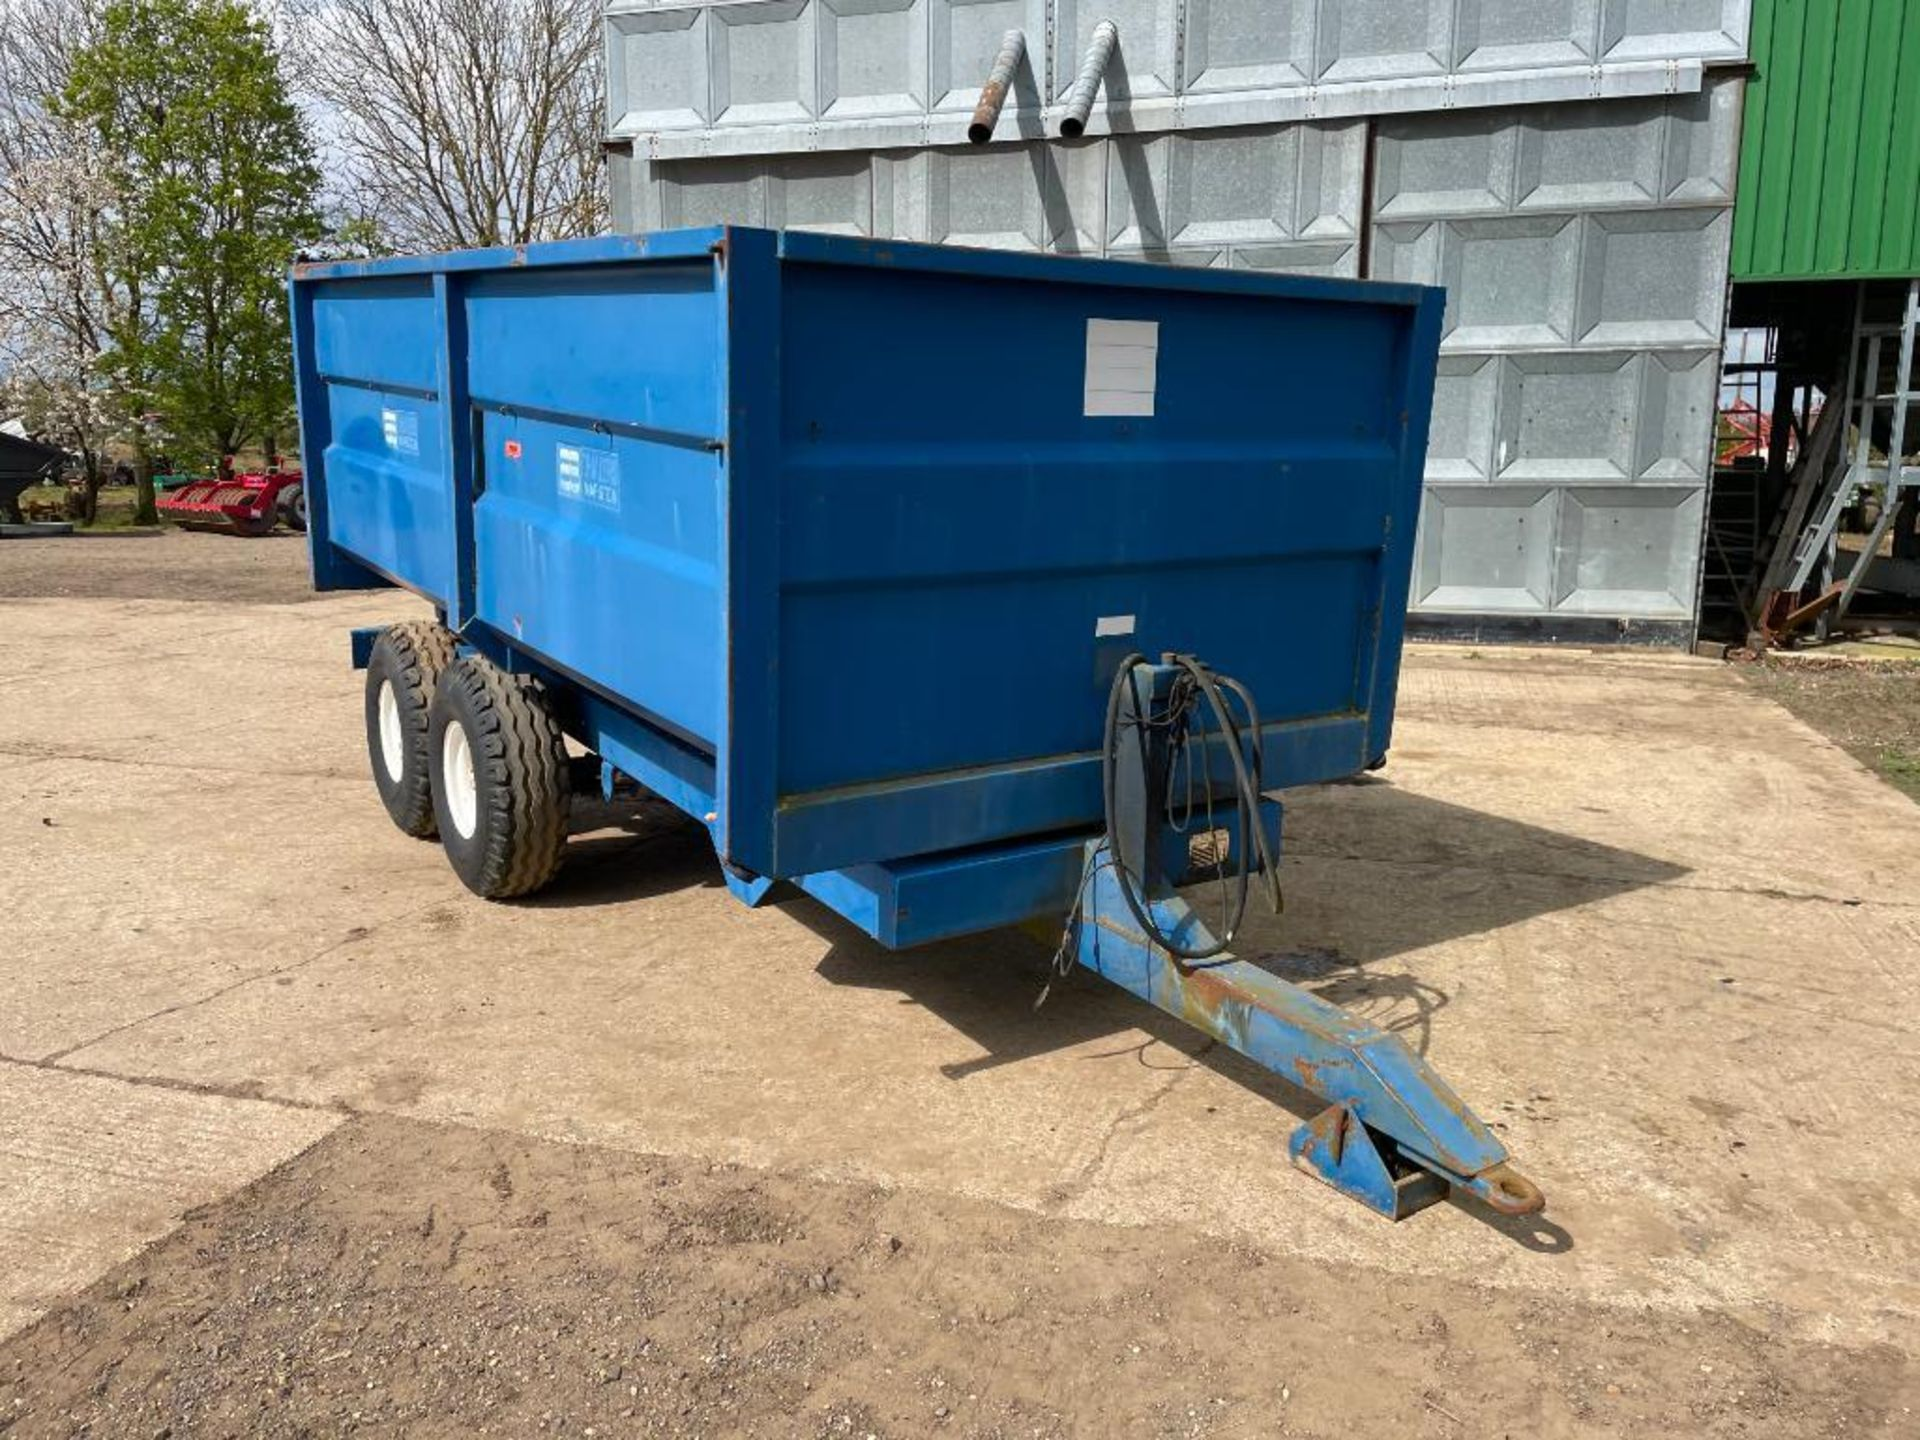 1986 AS Marston 8t twin axle grain trailer, manual tailgate and grain chute on 12.5/80-15.3 wheels a - Image 6 of 14